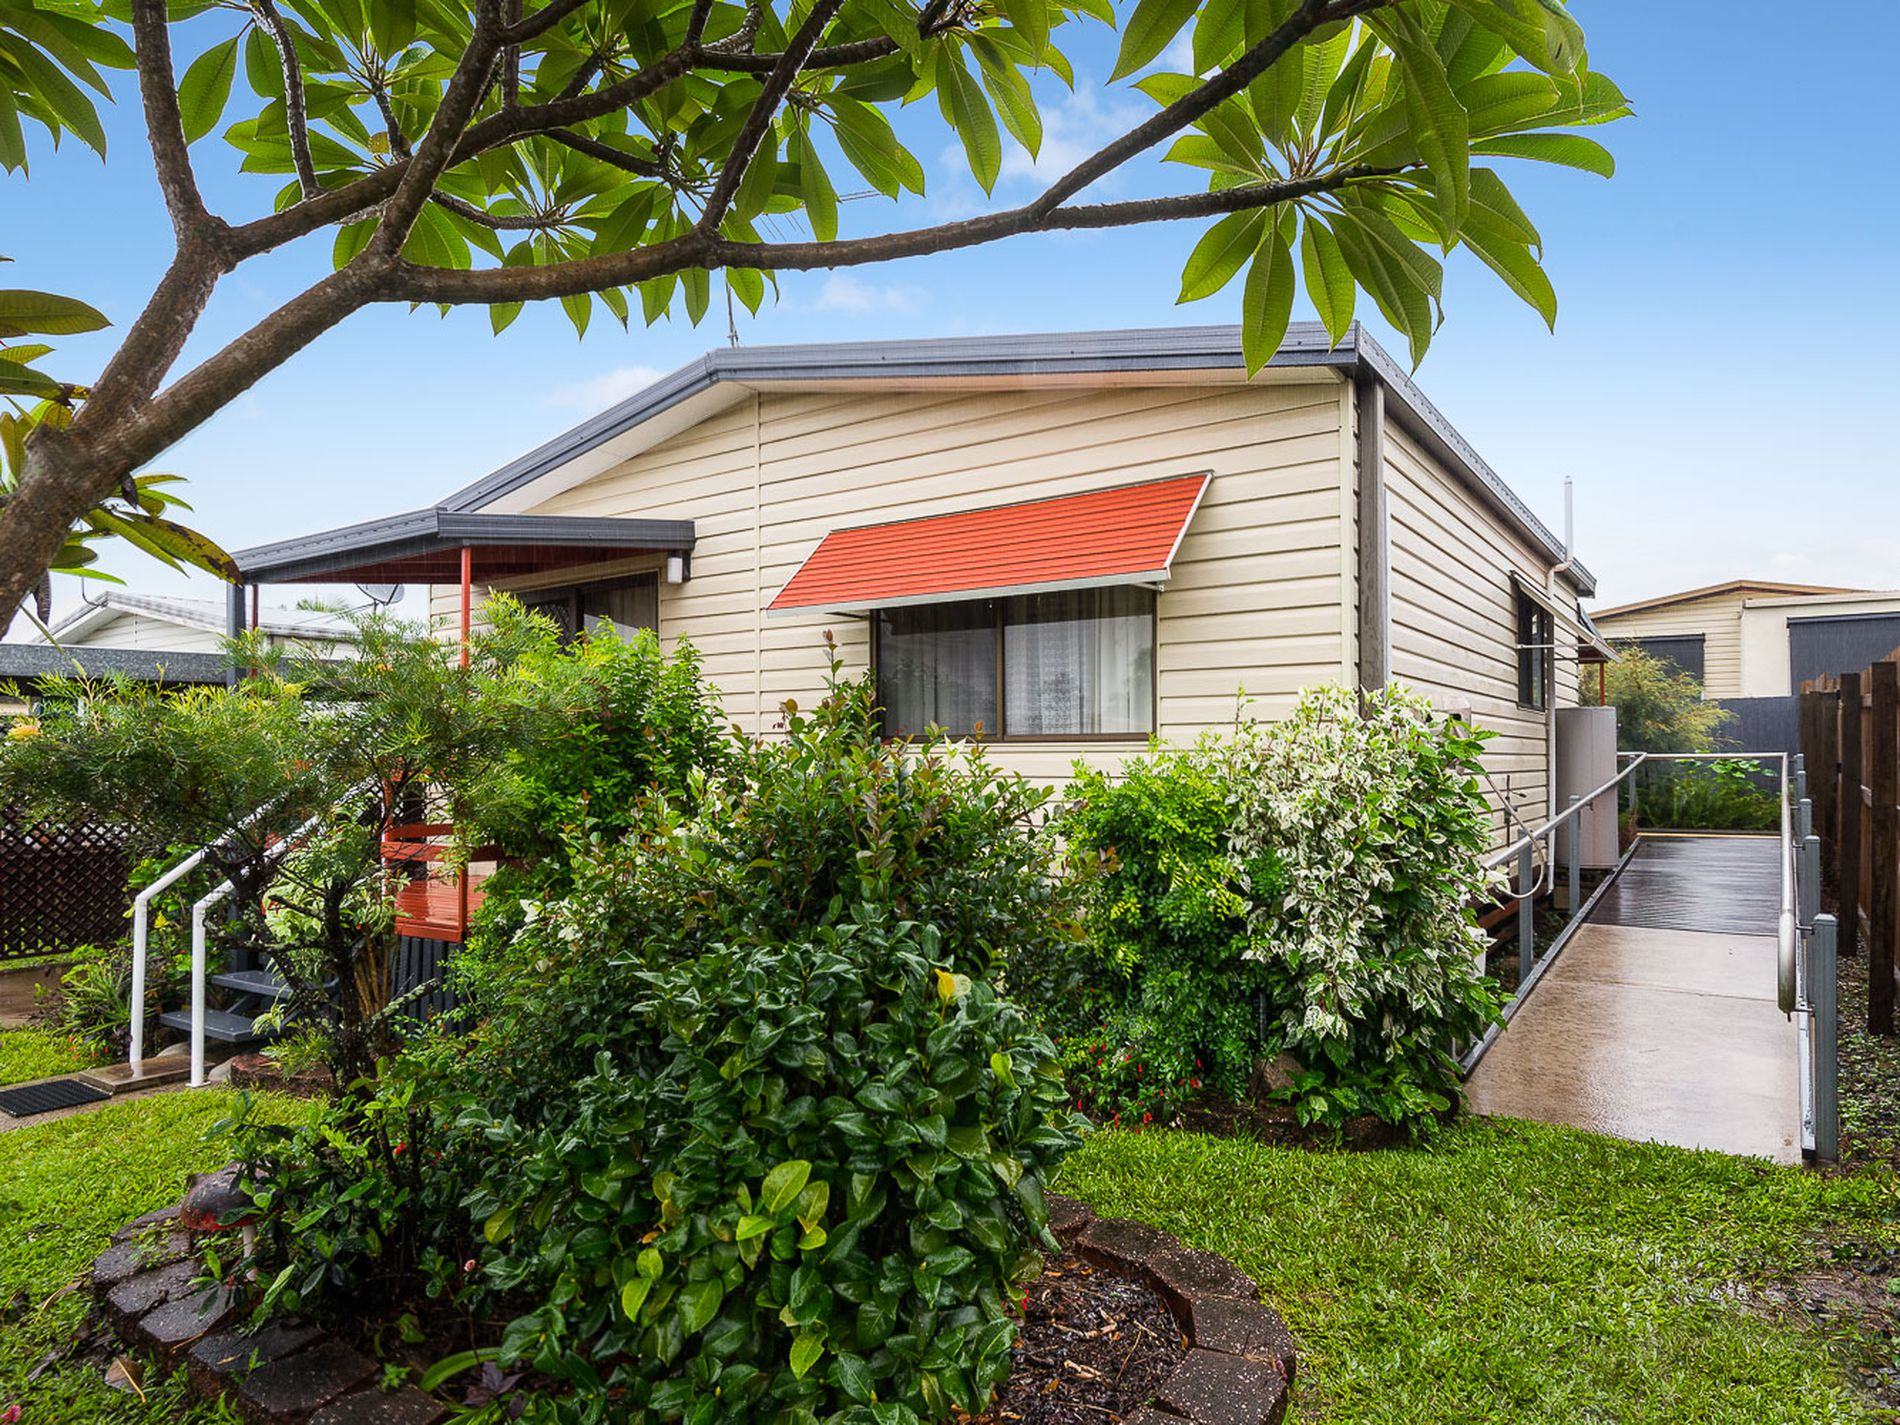 29 / 431 Heritage Way, Park Ridge Road, Park Ridge